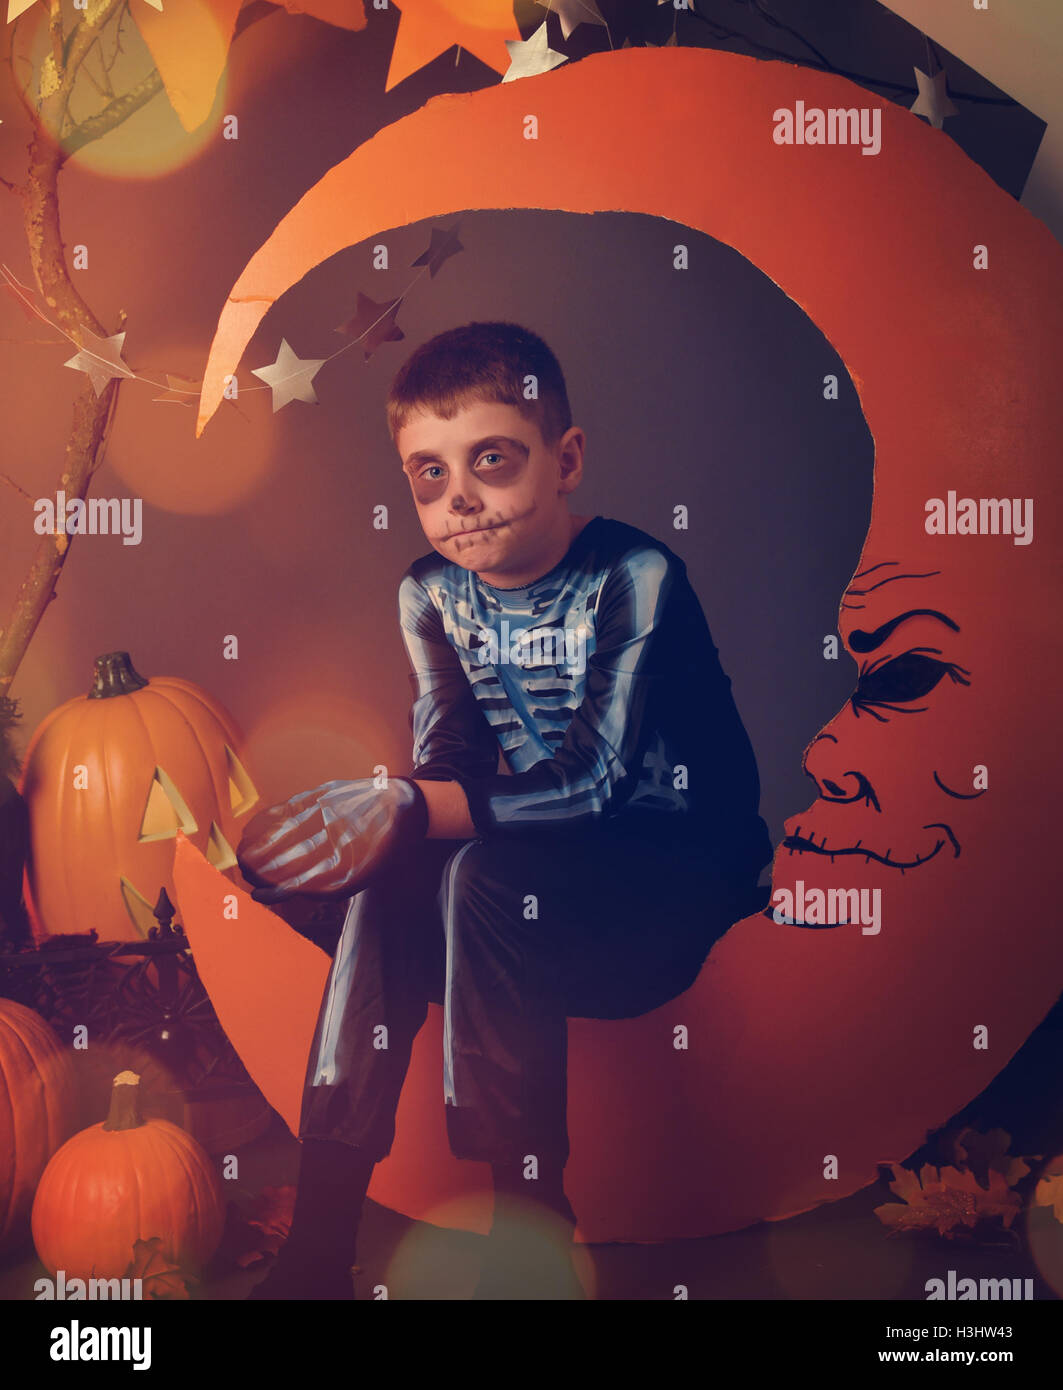 A boy is wearing a Halloween Skeleton costume and sitting on an orange moon with a face and stars for a night portrait. Stock Photo